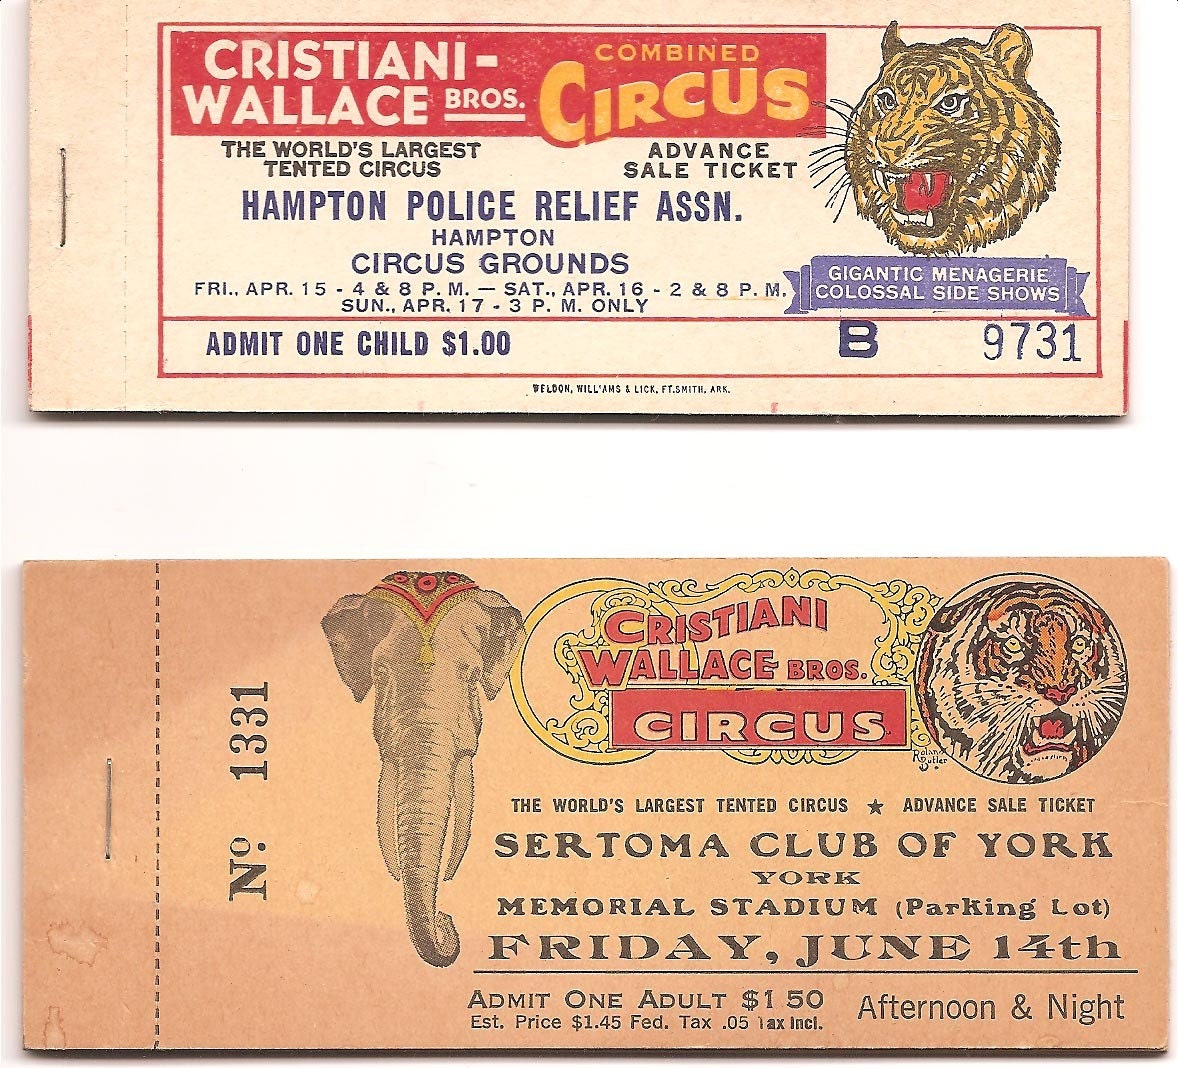 2 Vintage Books Of Circus Tickets Cristiani Bros 1 Adult 1-6672